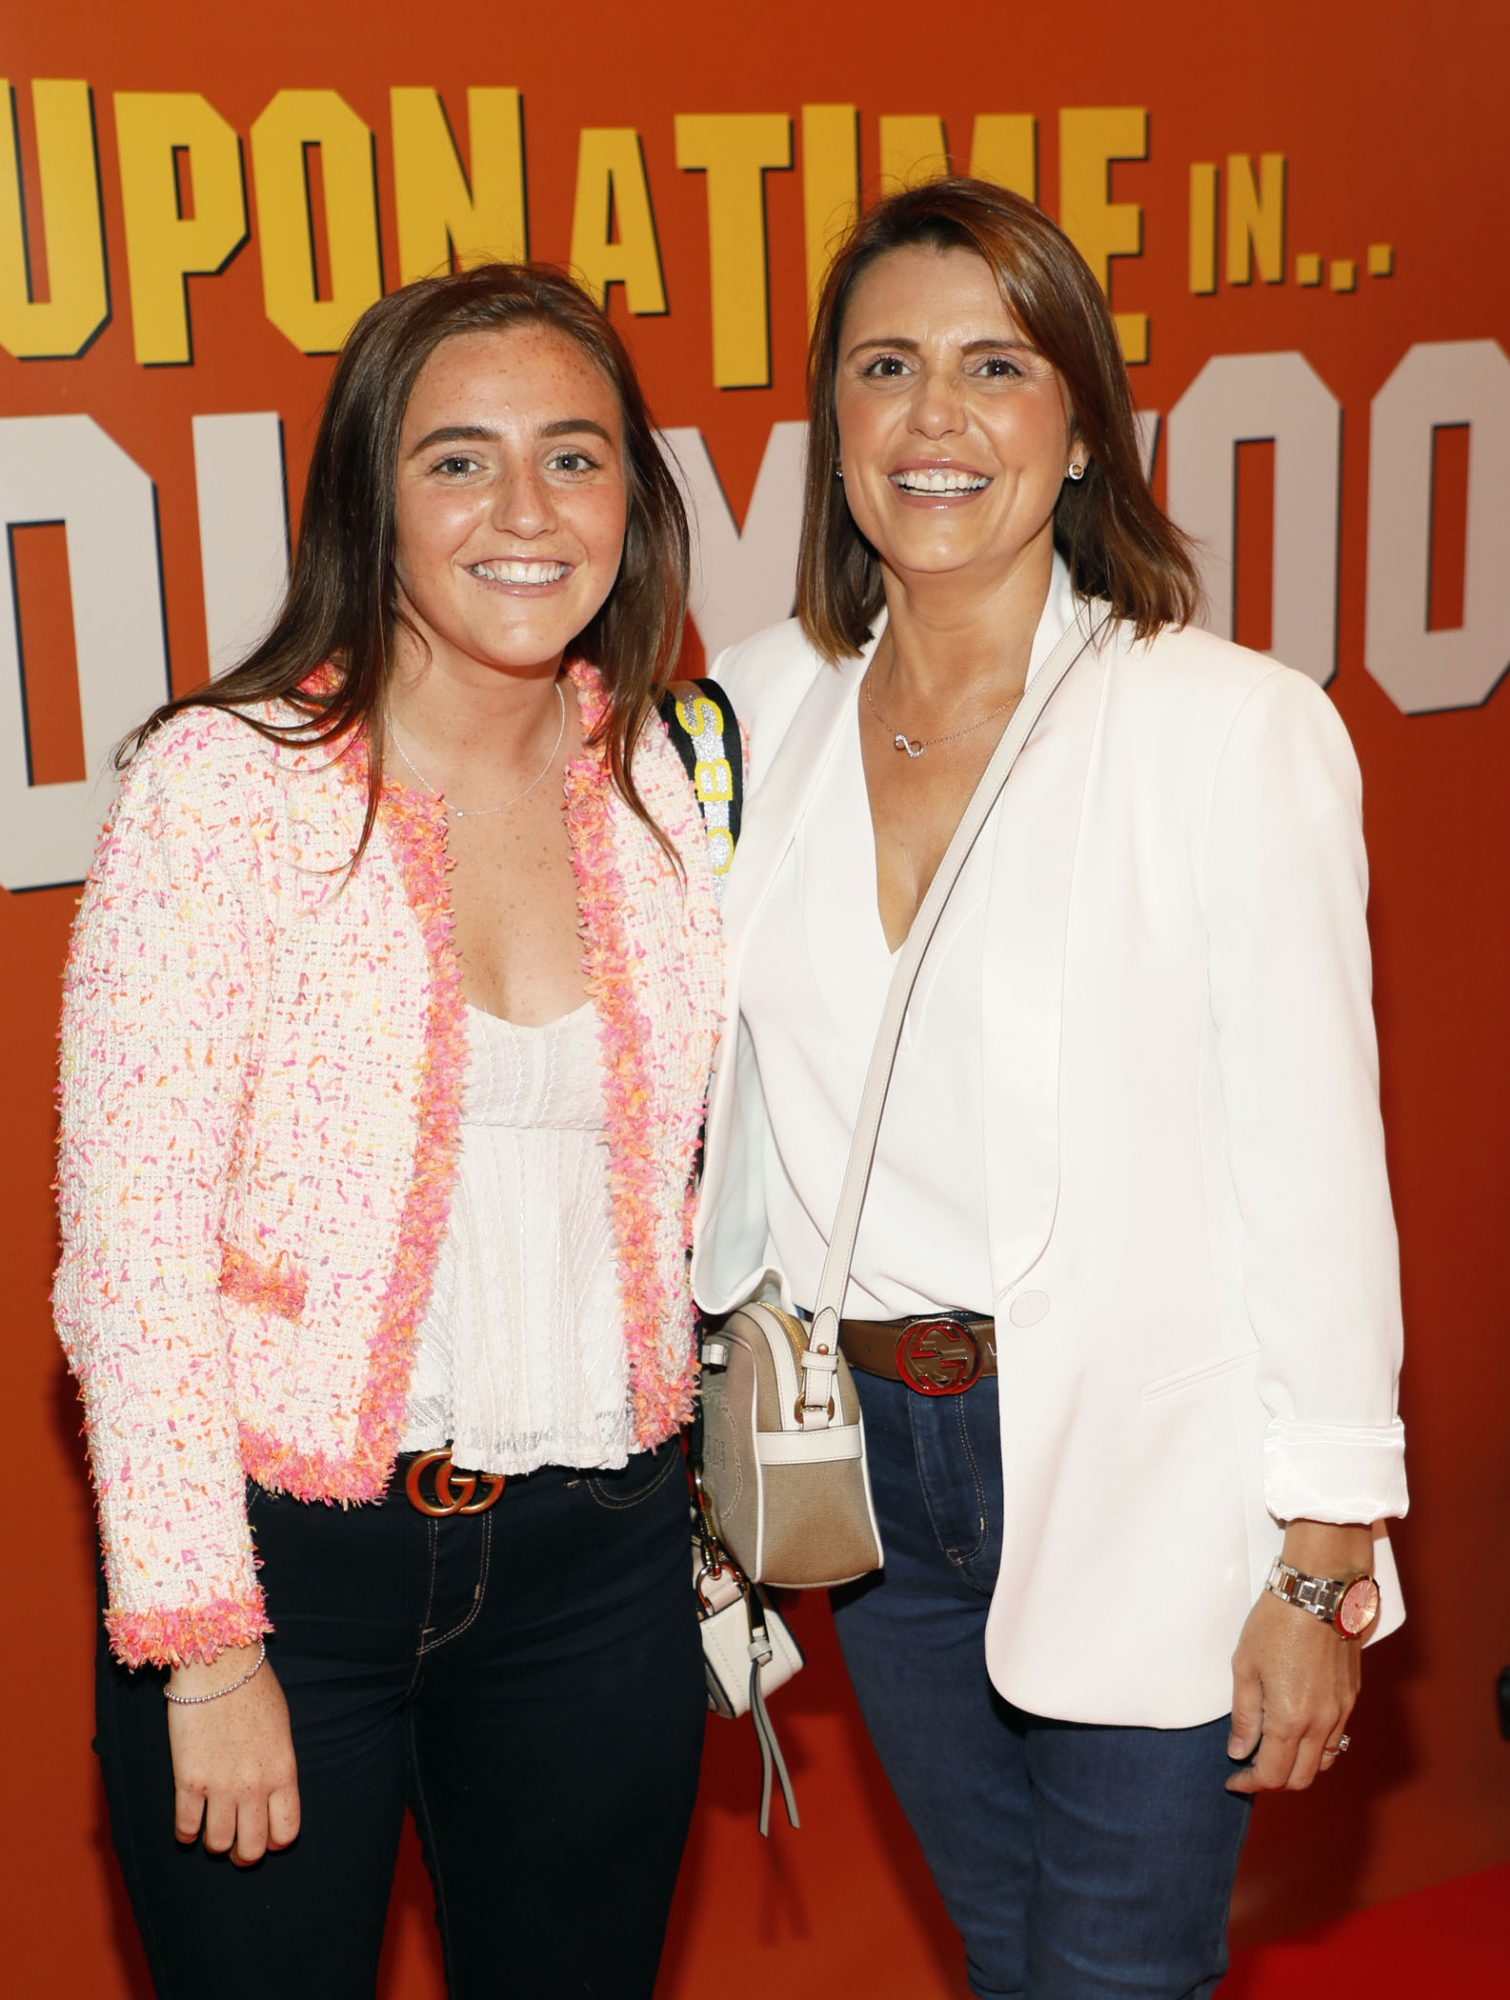 Danielle Clerkin and Cora Halpin at the Multimedia Screening of Once Upon A Time In Hollywood at the Stella Theatre, Rathmines, in cinema August 14th. Photo: Kieran Harnett